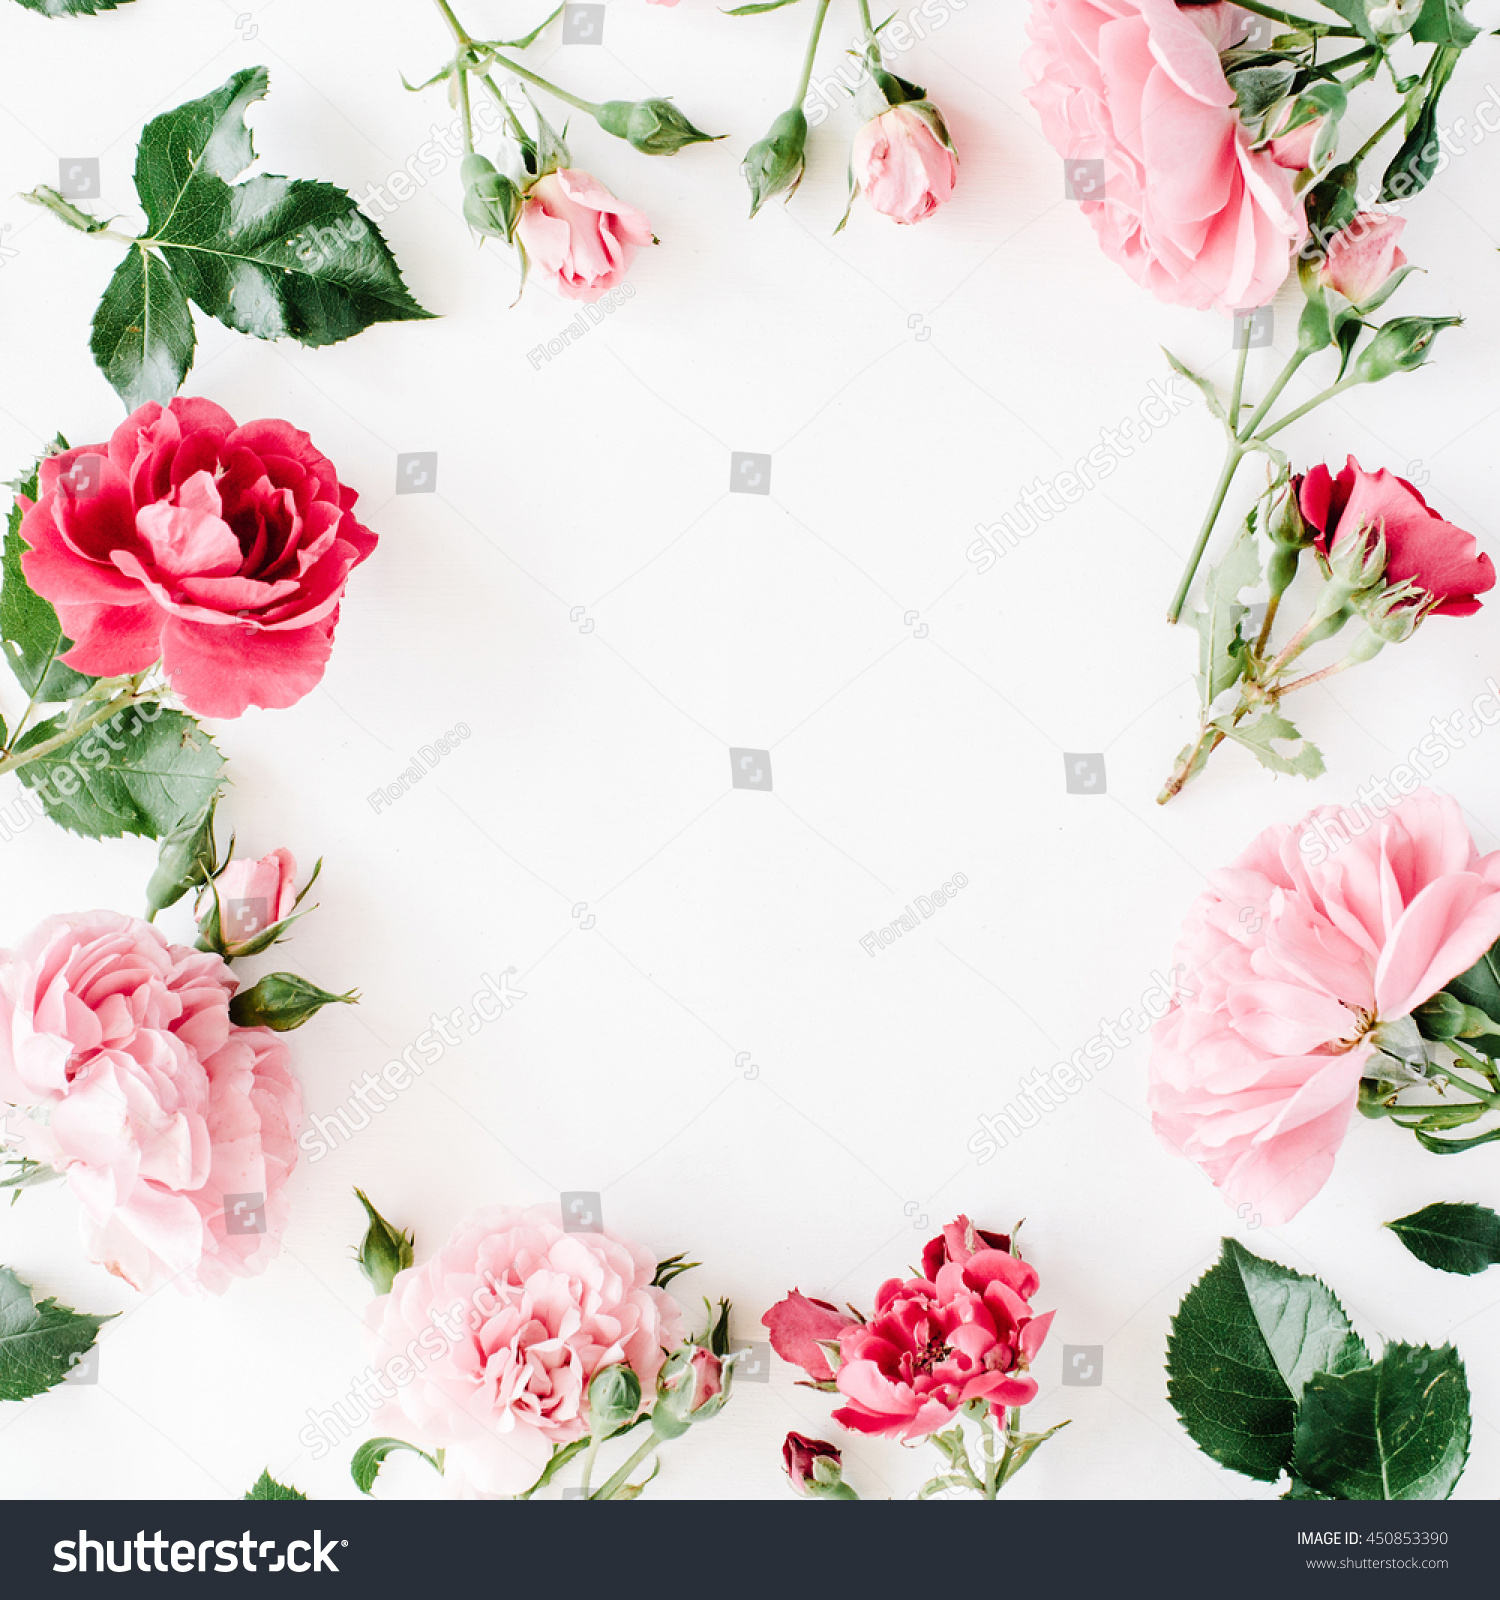 Round Frame Wreath Pattern With Roses Pink Flower Buds Branches